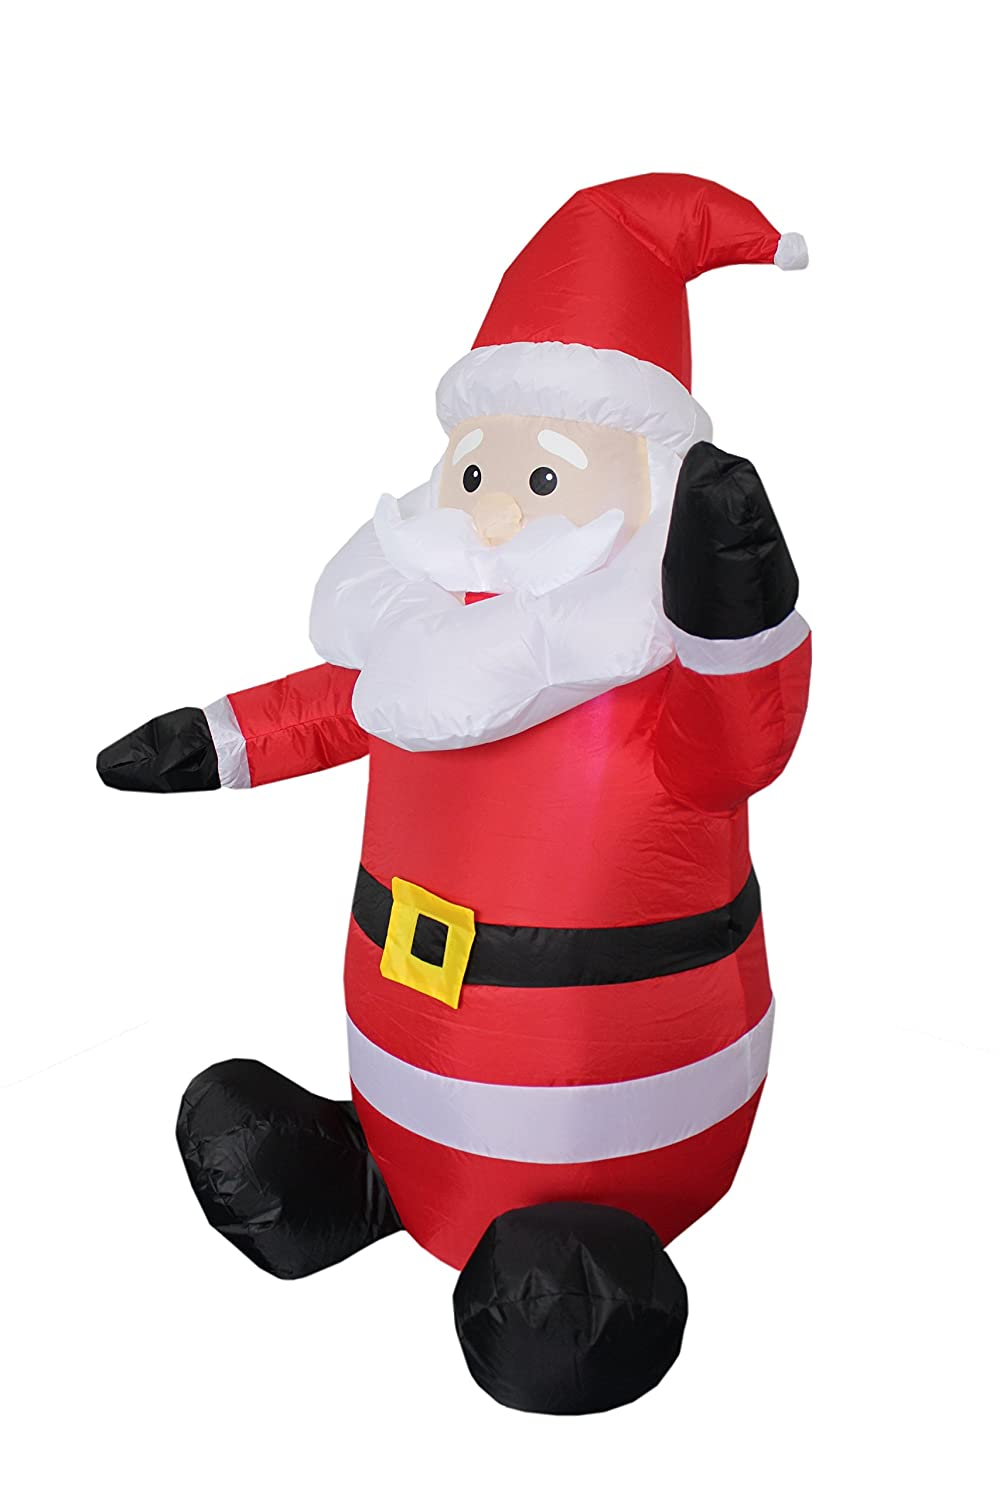 amazoncom 4 foot christmas inflatable santa claus blow up yard decoration clothing - Blow Up Christmas Decorations